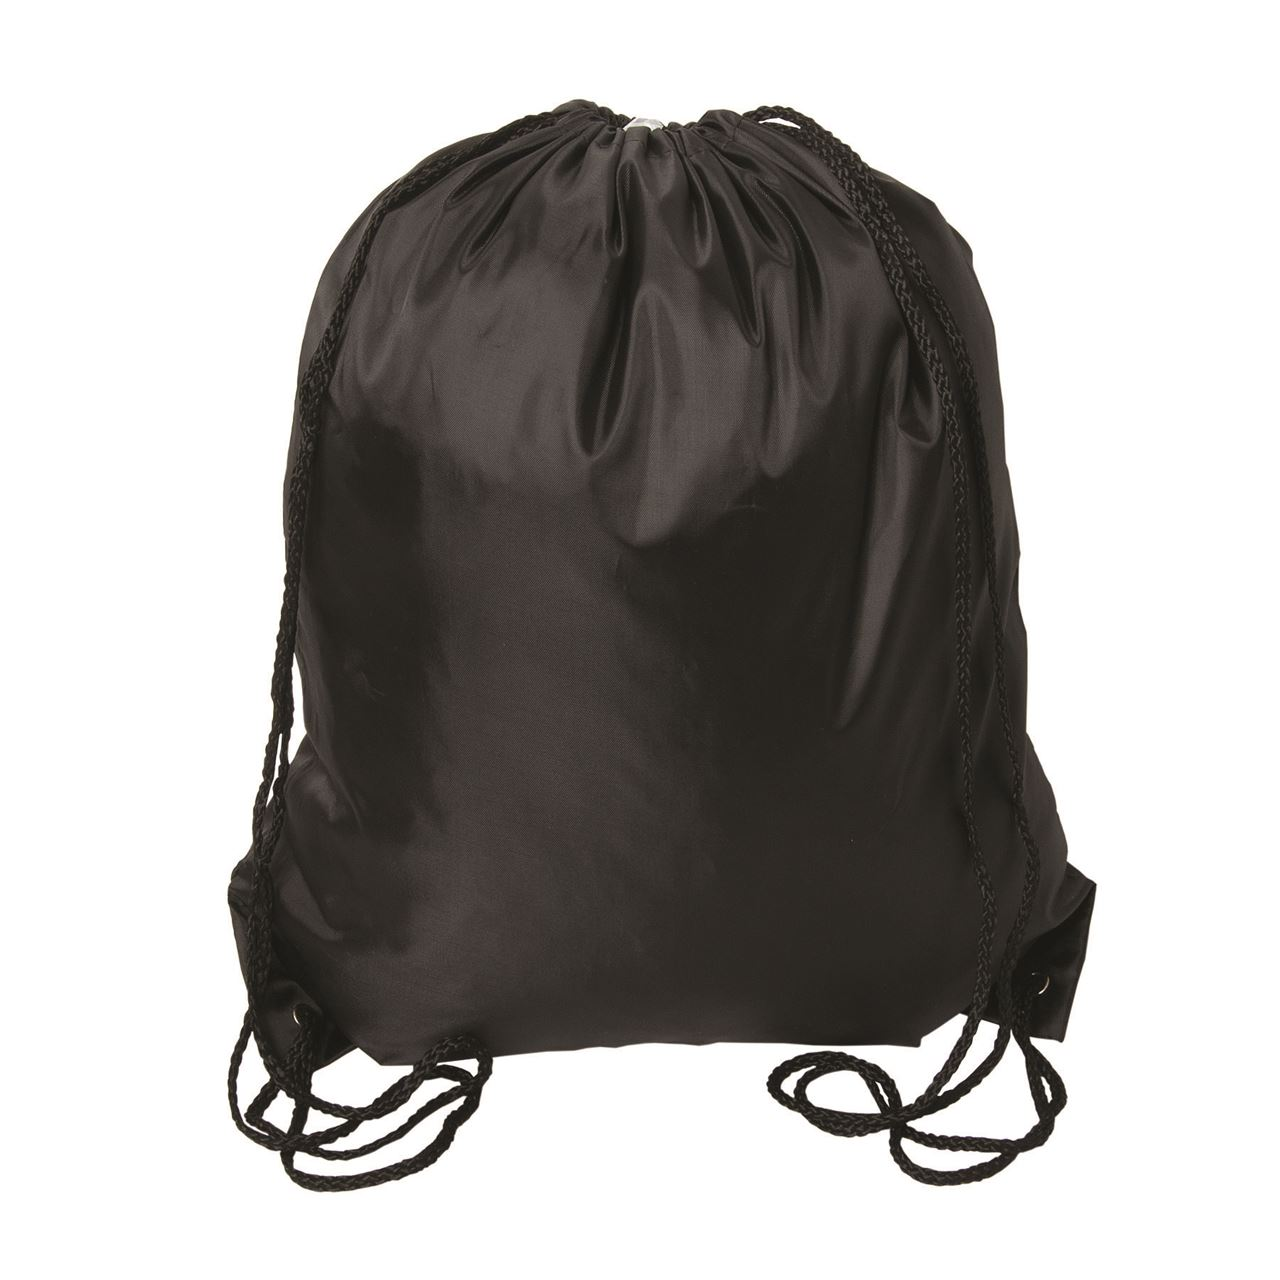 Picture of Mahalo Large Drawstring Knapsack